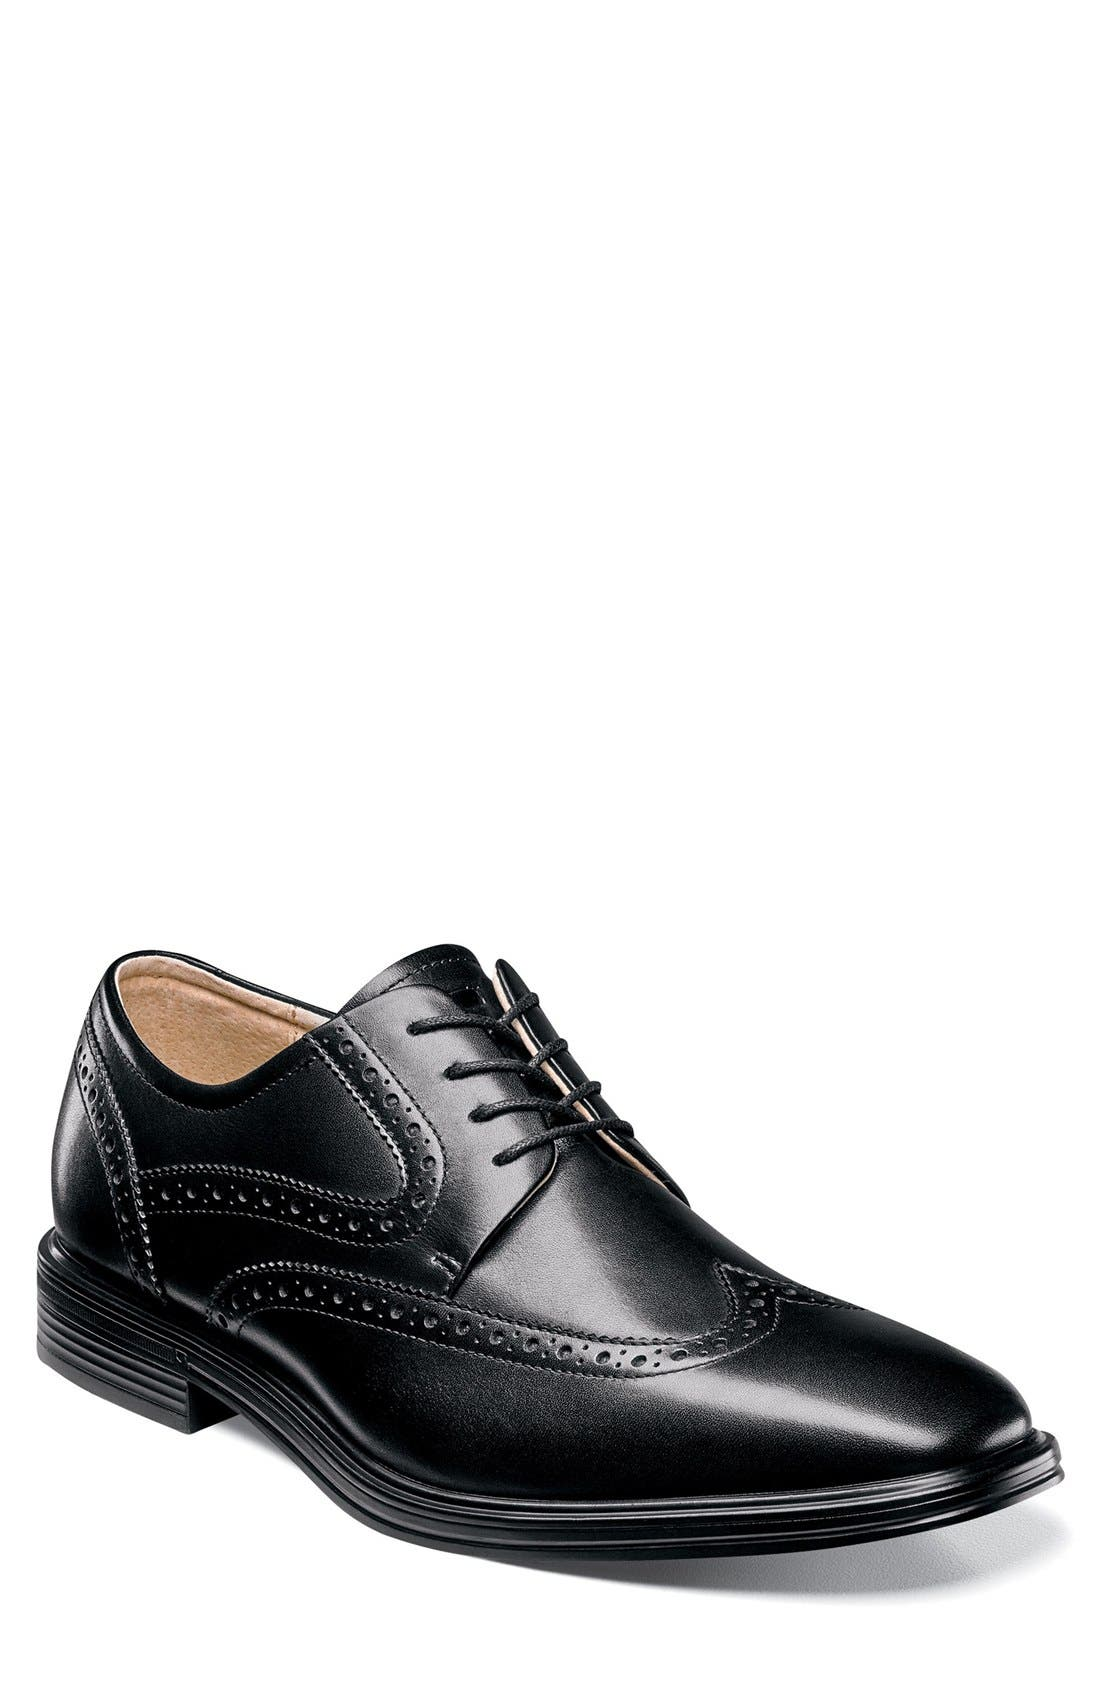 Heights Wingtip,                         Main,                         color,